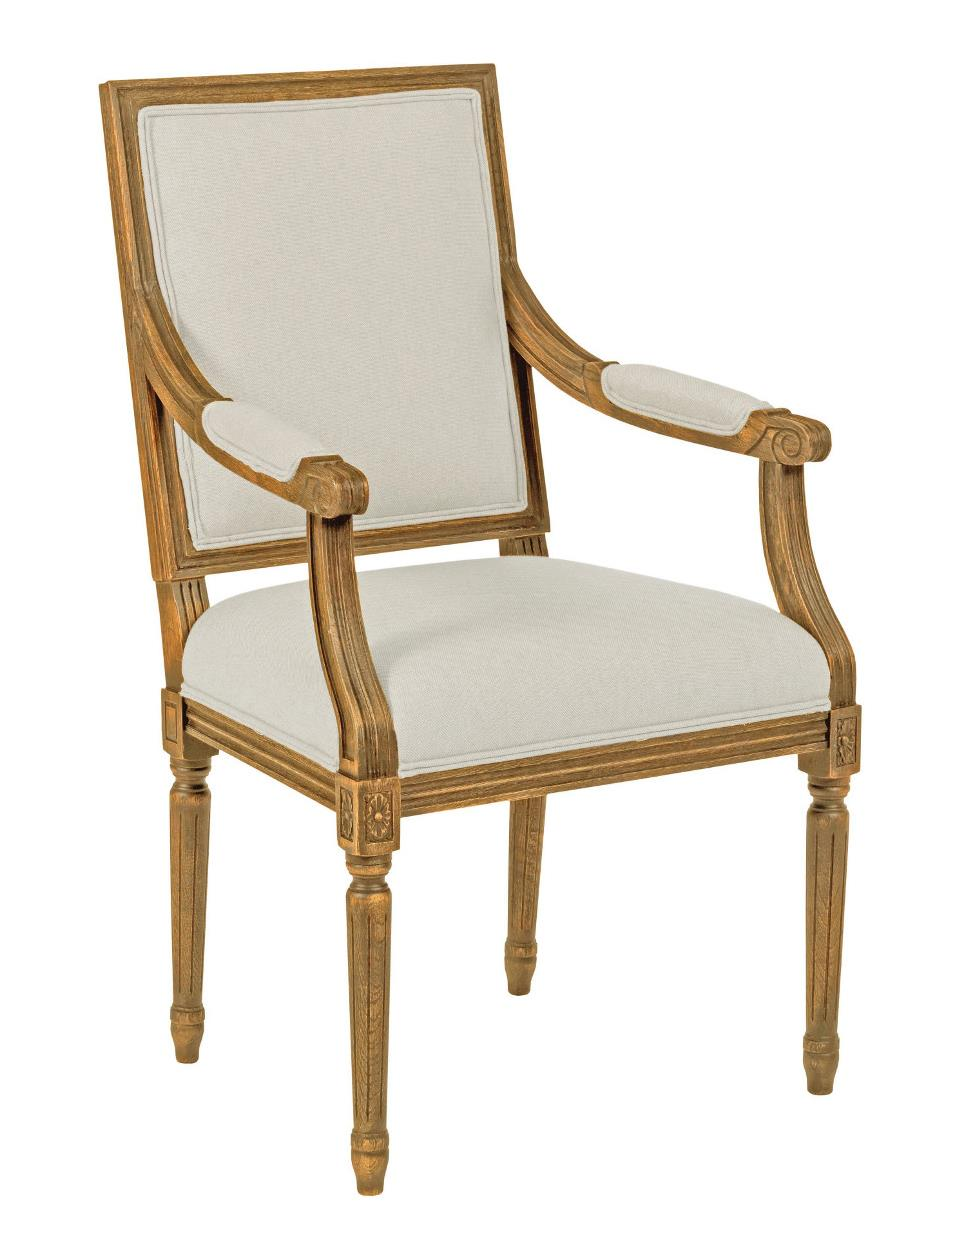 Kincaid Furniture Artisans Shoppe Accents French Dining Arm Chair - Item Number: 90-2404R